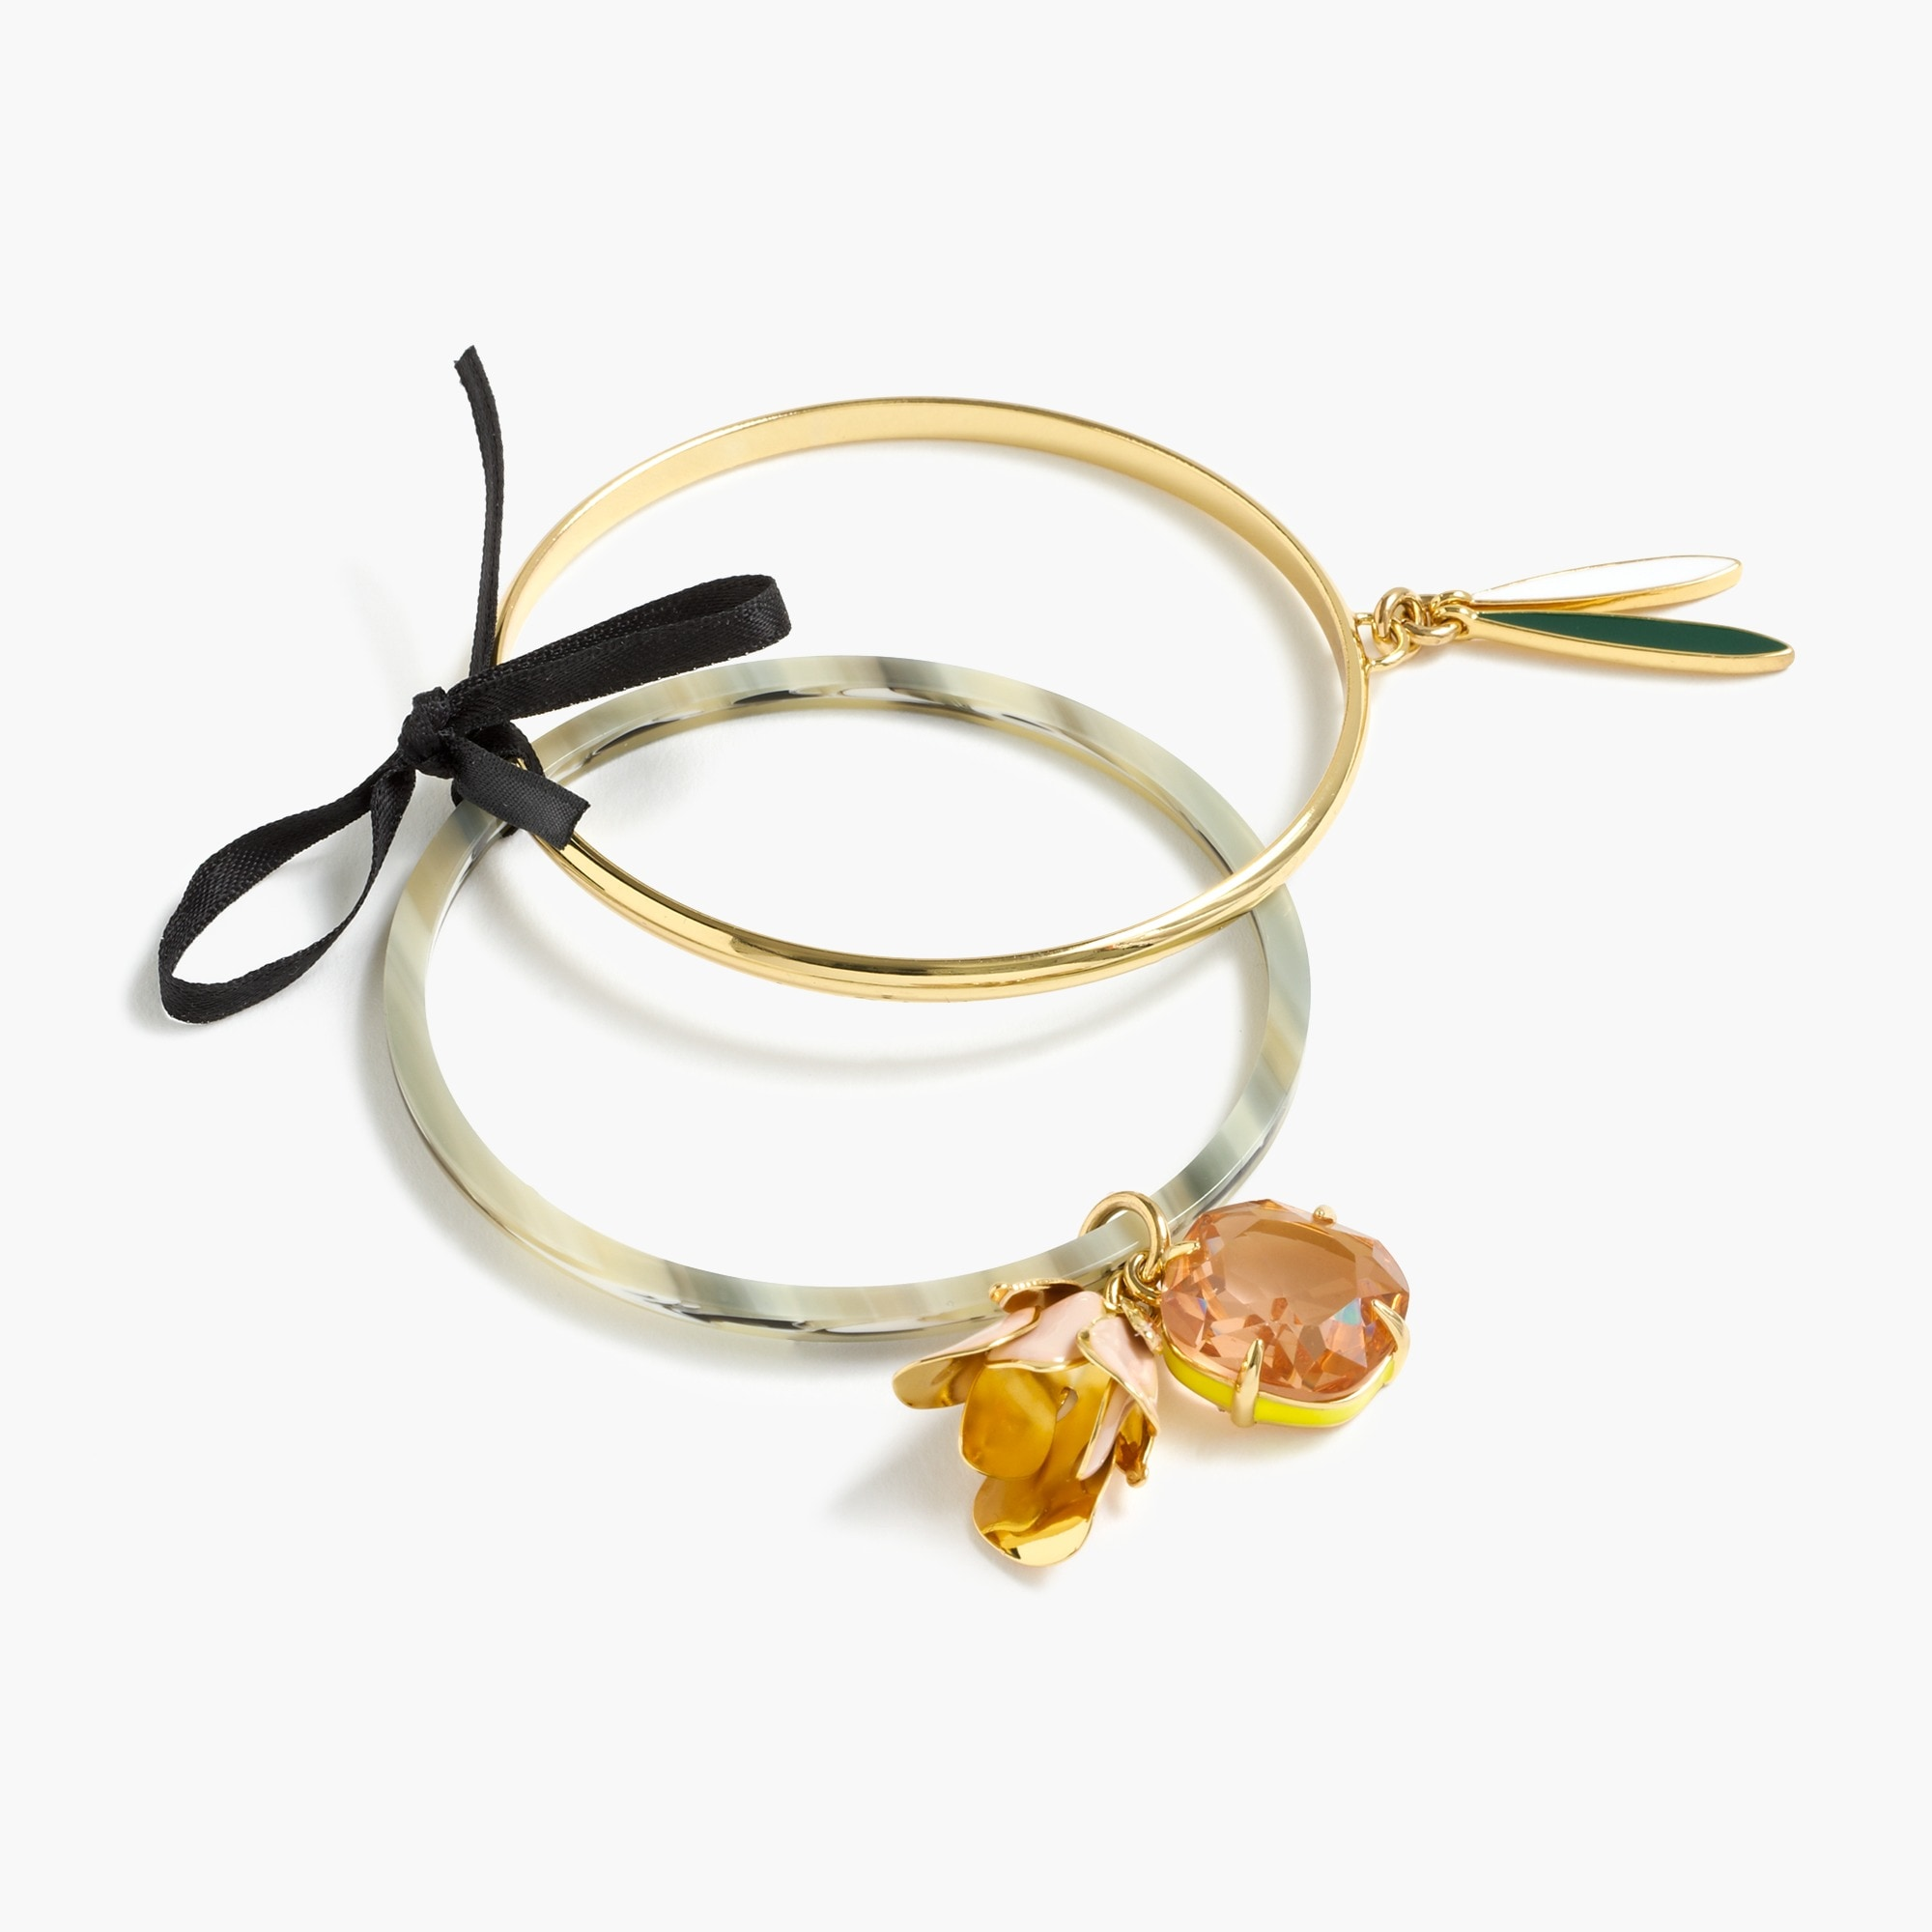 Image 1 for Flower charm bangle set